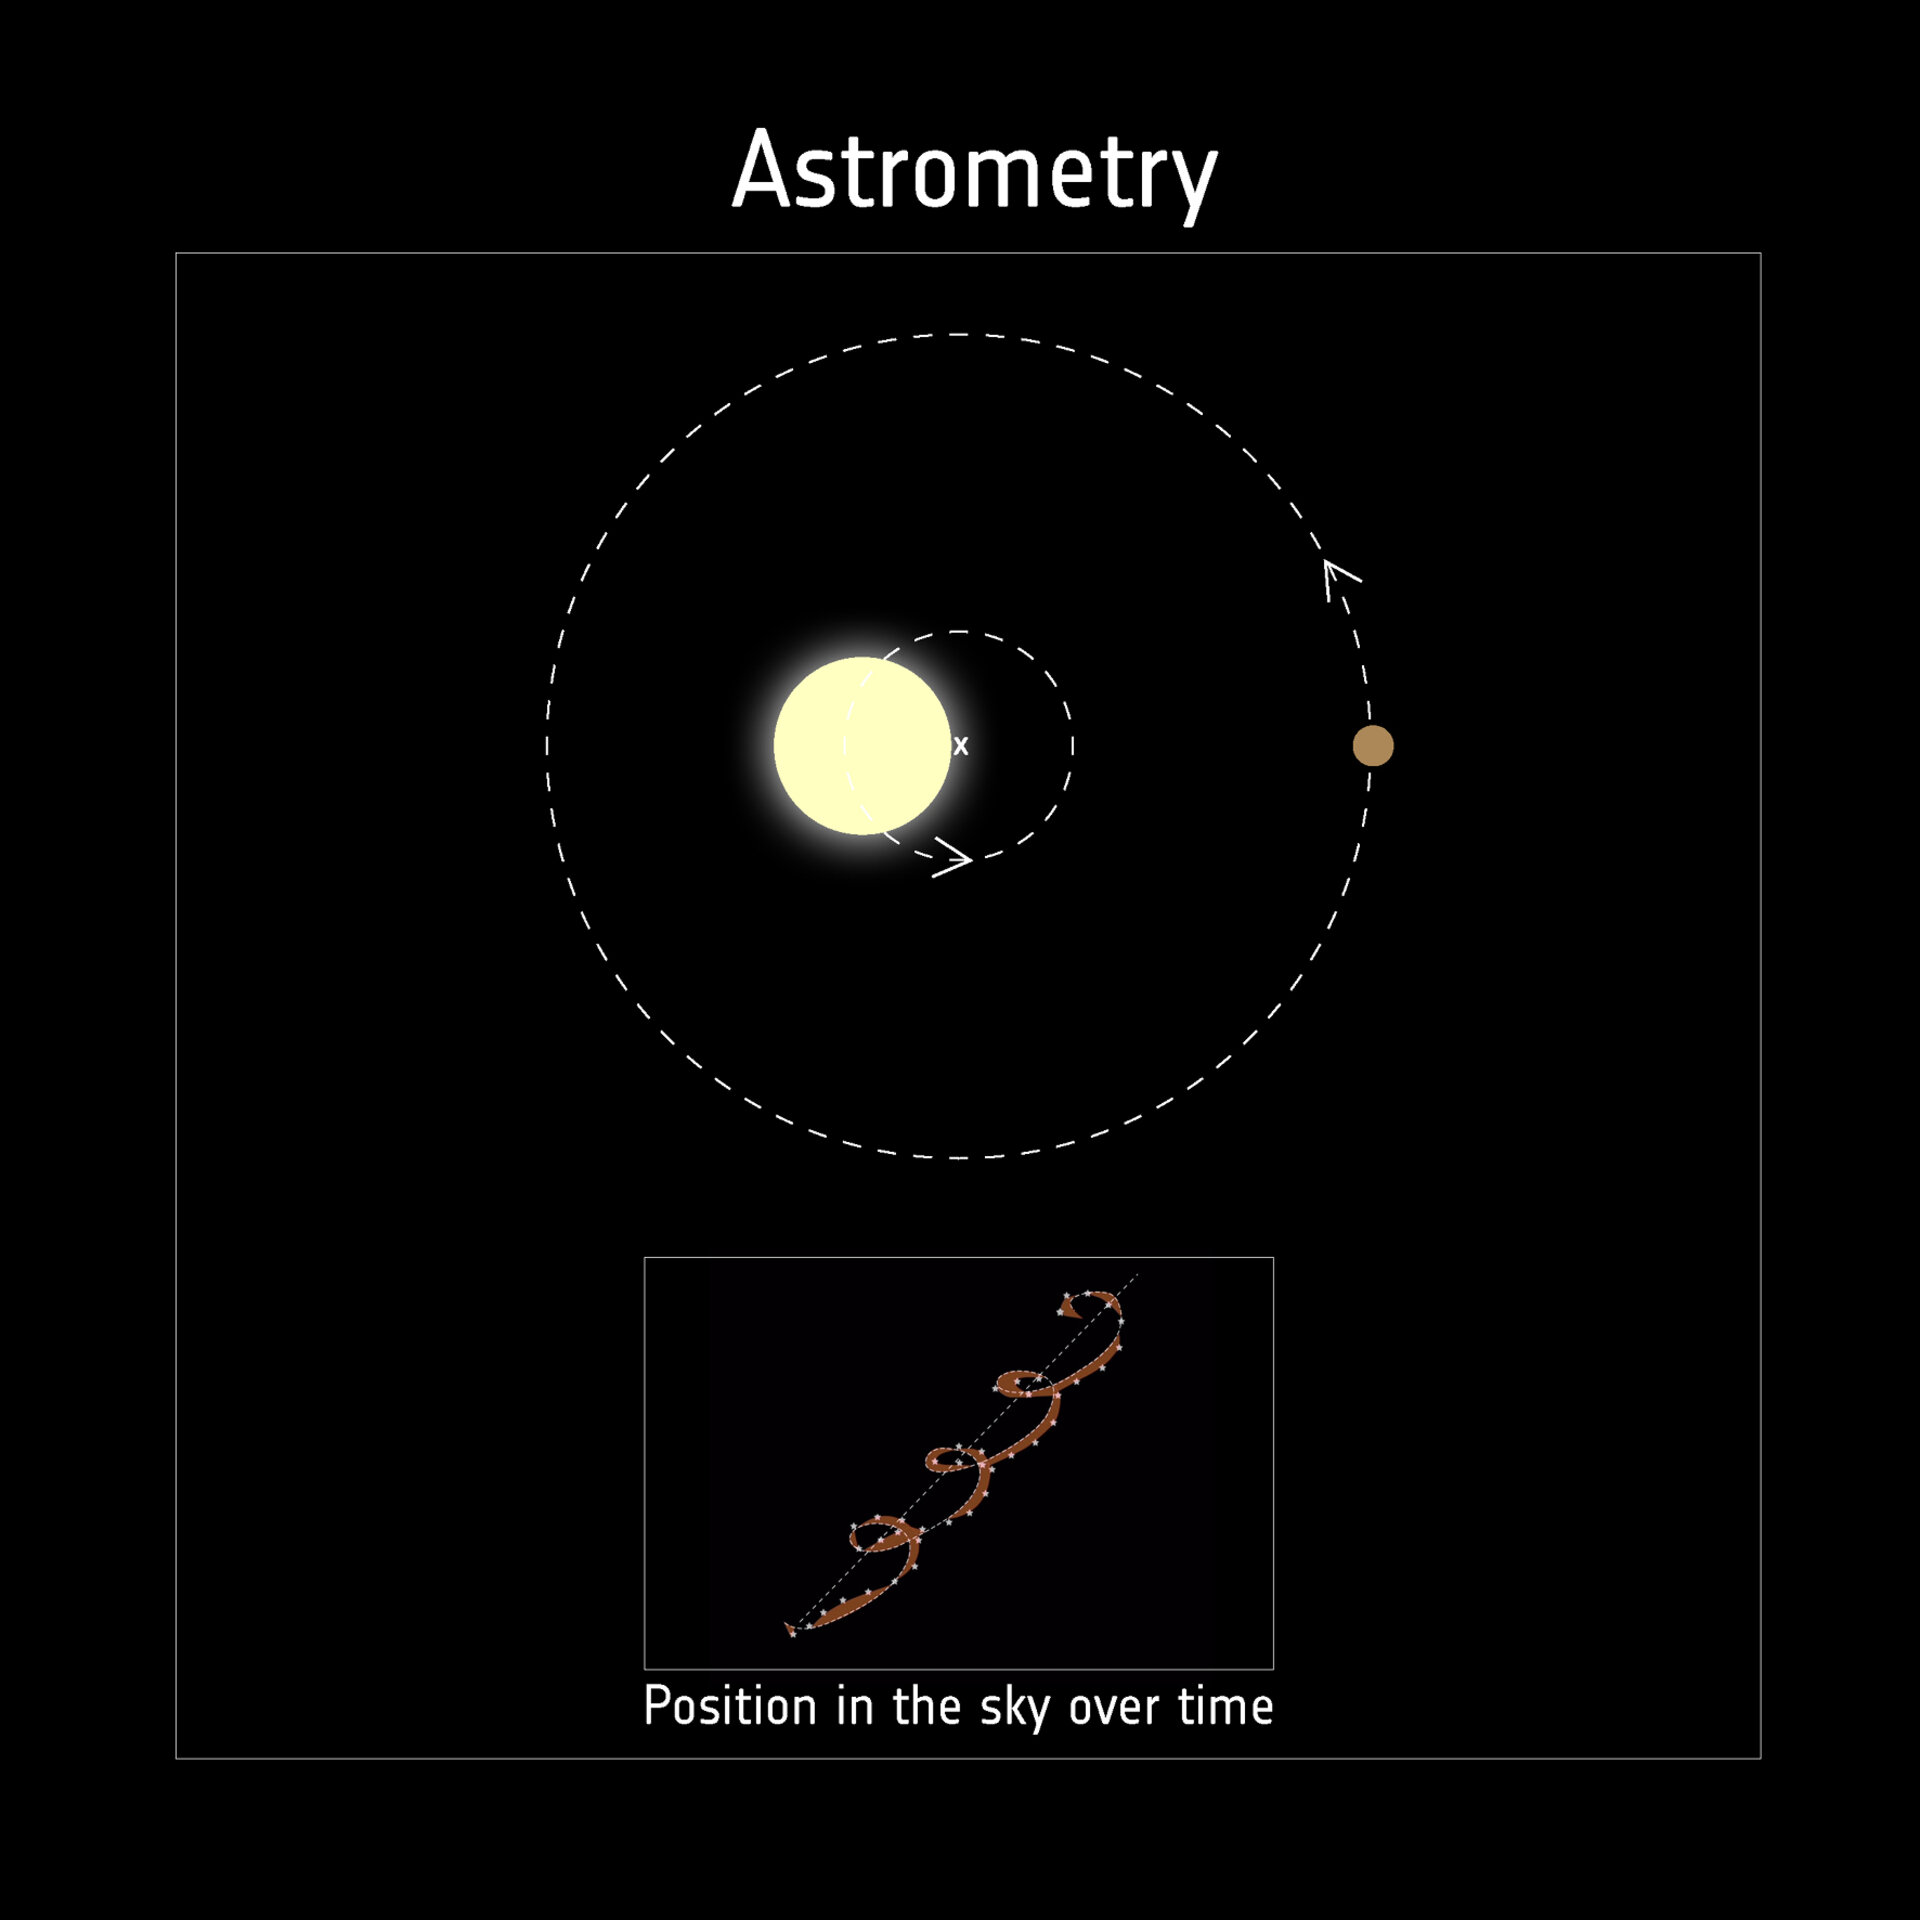 Detecting exoplanets with astrometry